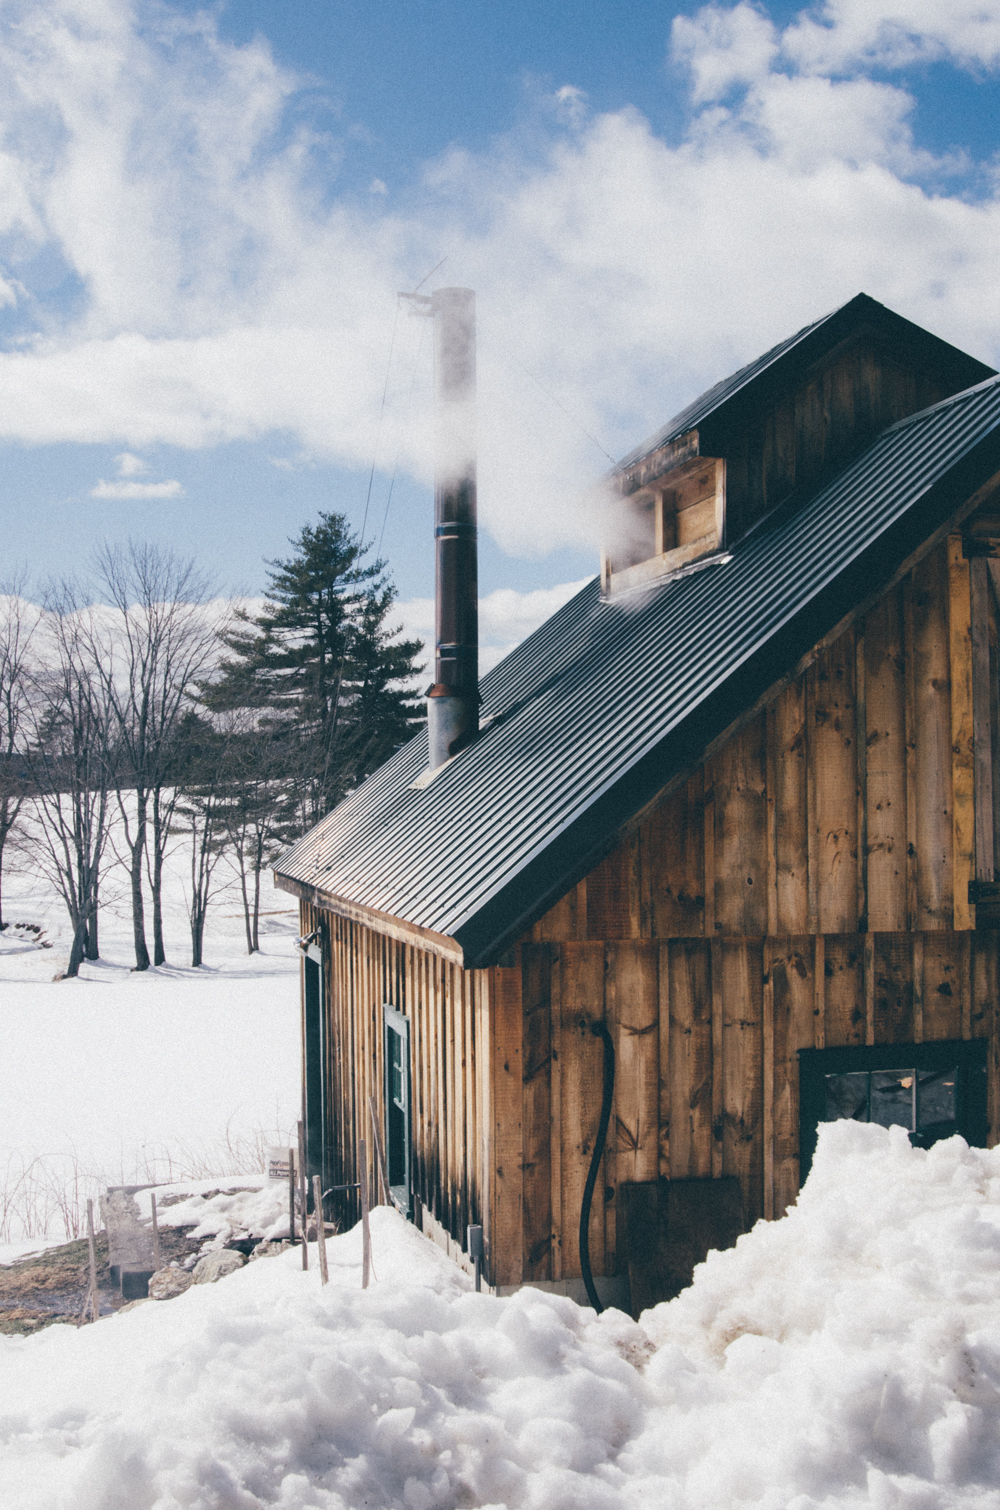 1a76affacf2 March in New England is maple sugaring season. Sugarhouses all over the  region begin collecting sap